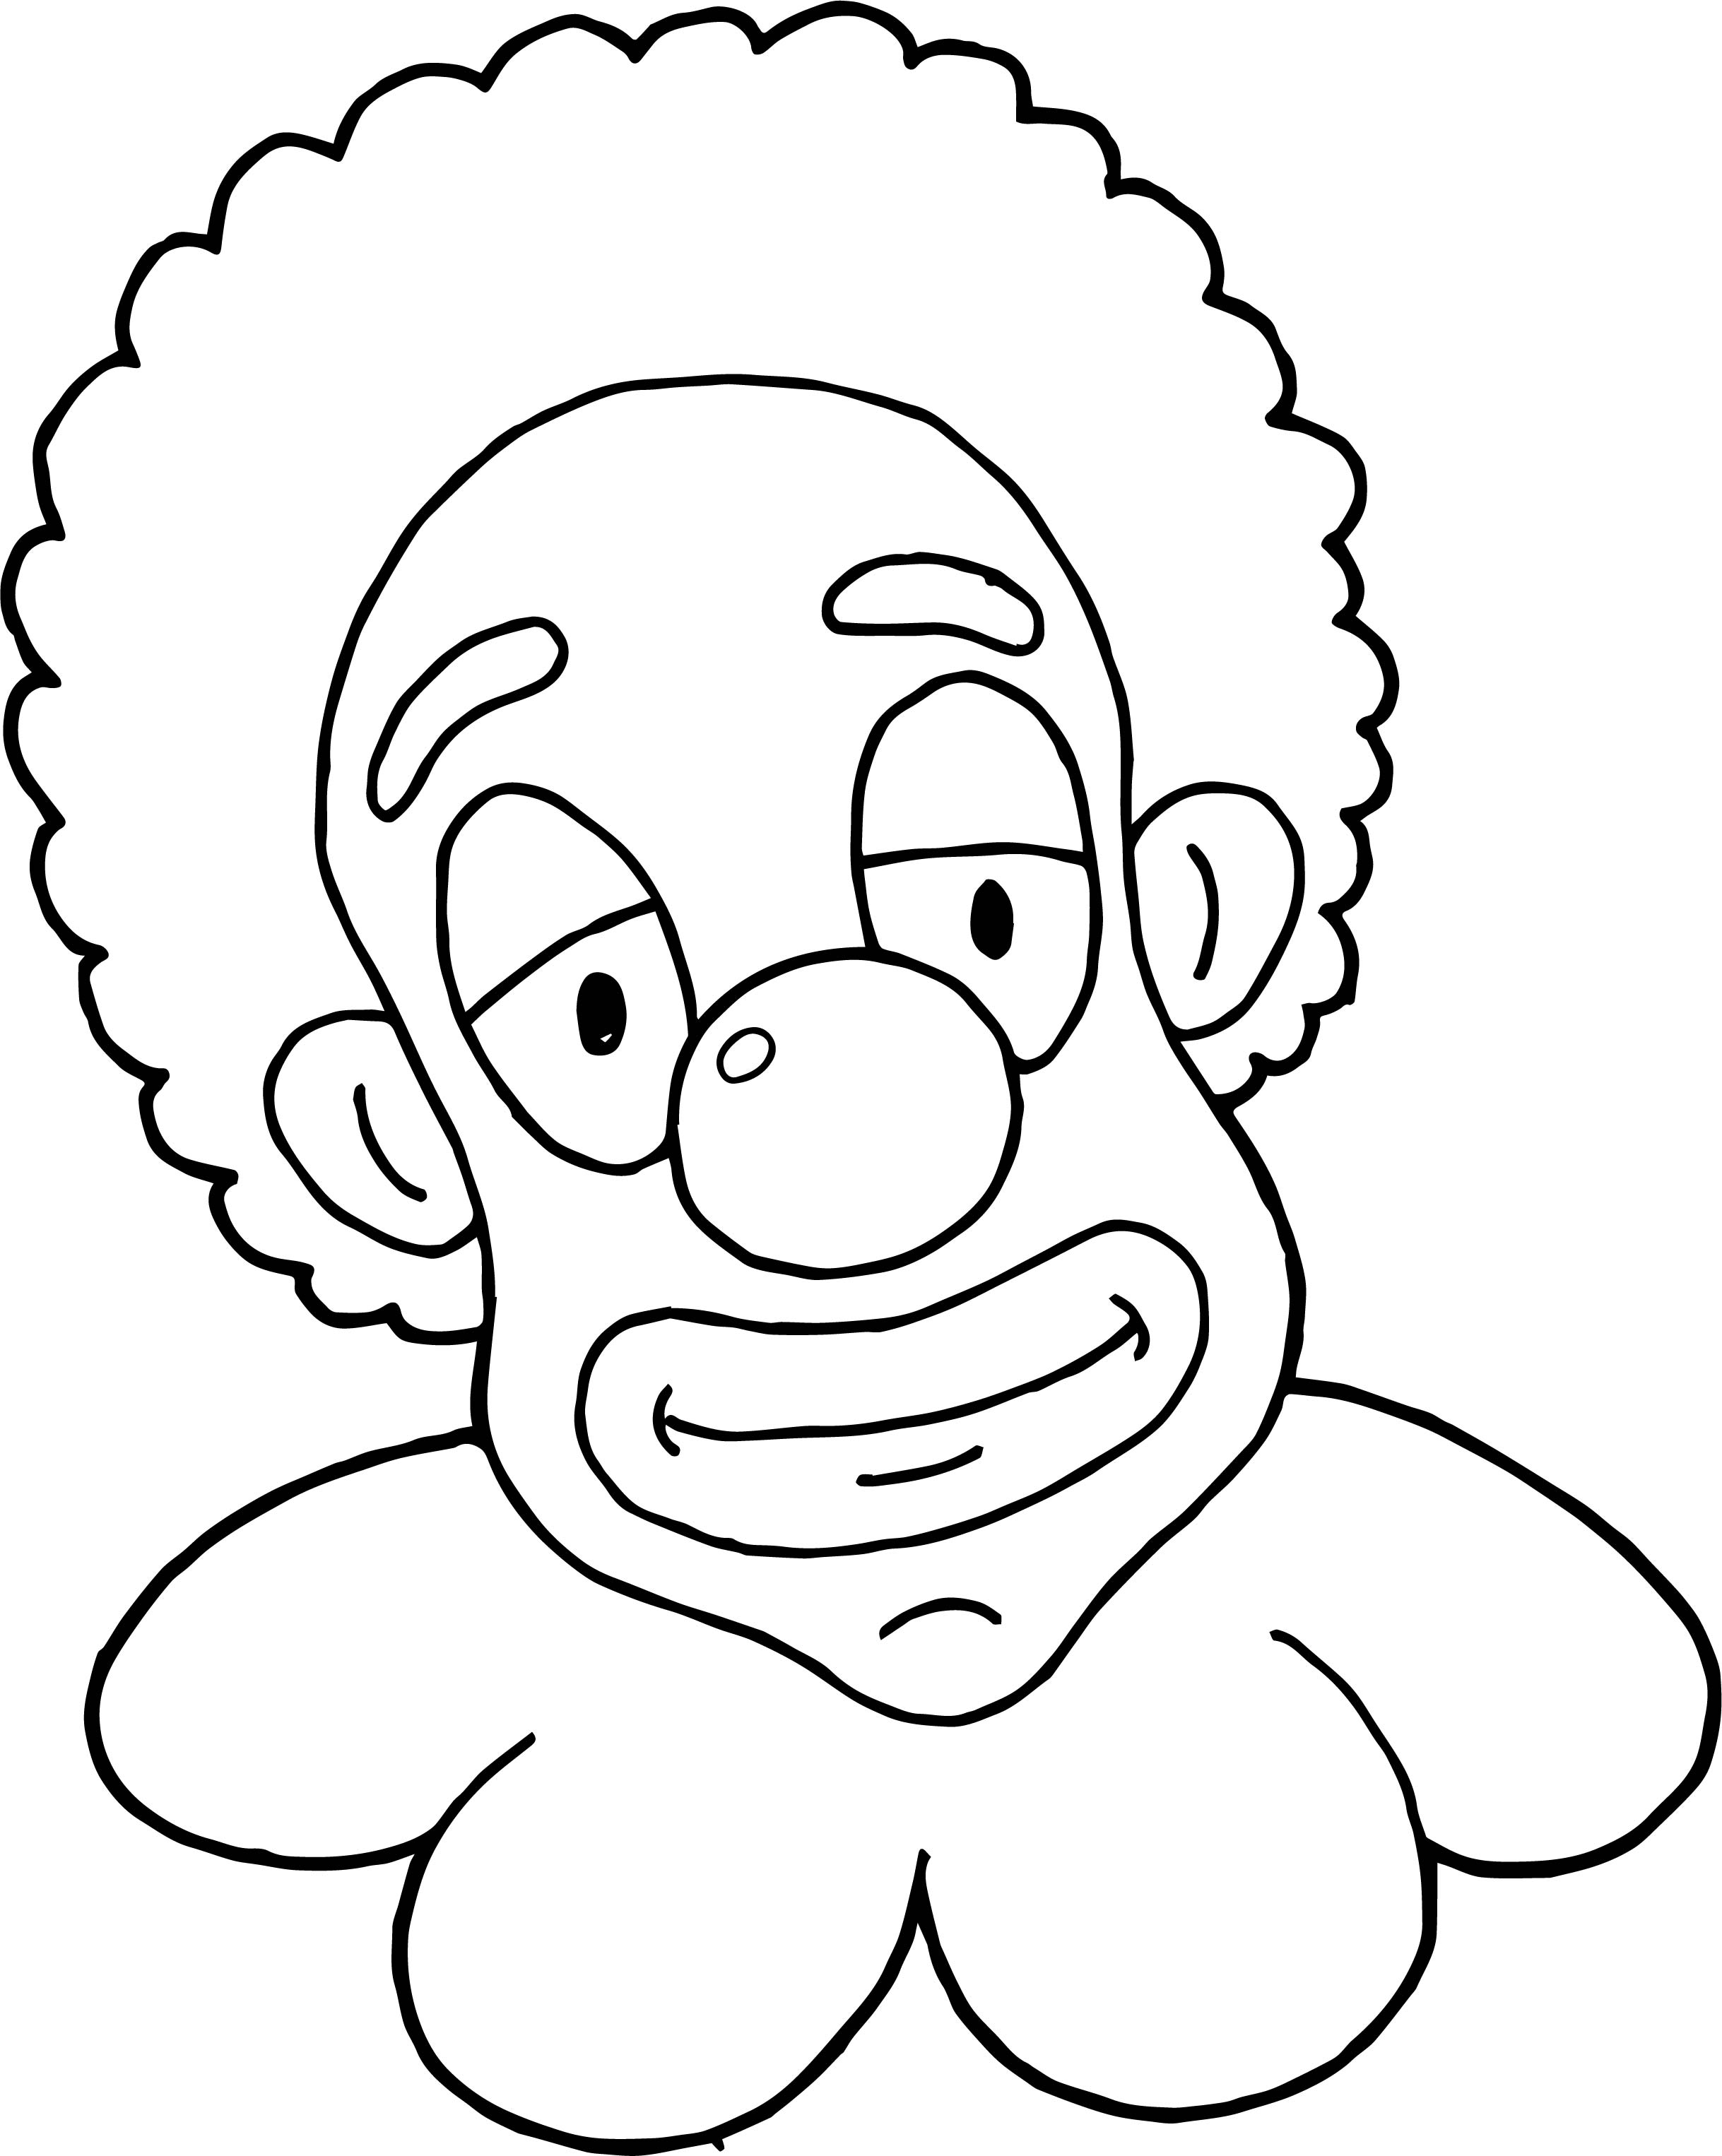 Clown Coloring Page WeColoringPage 007